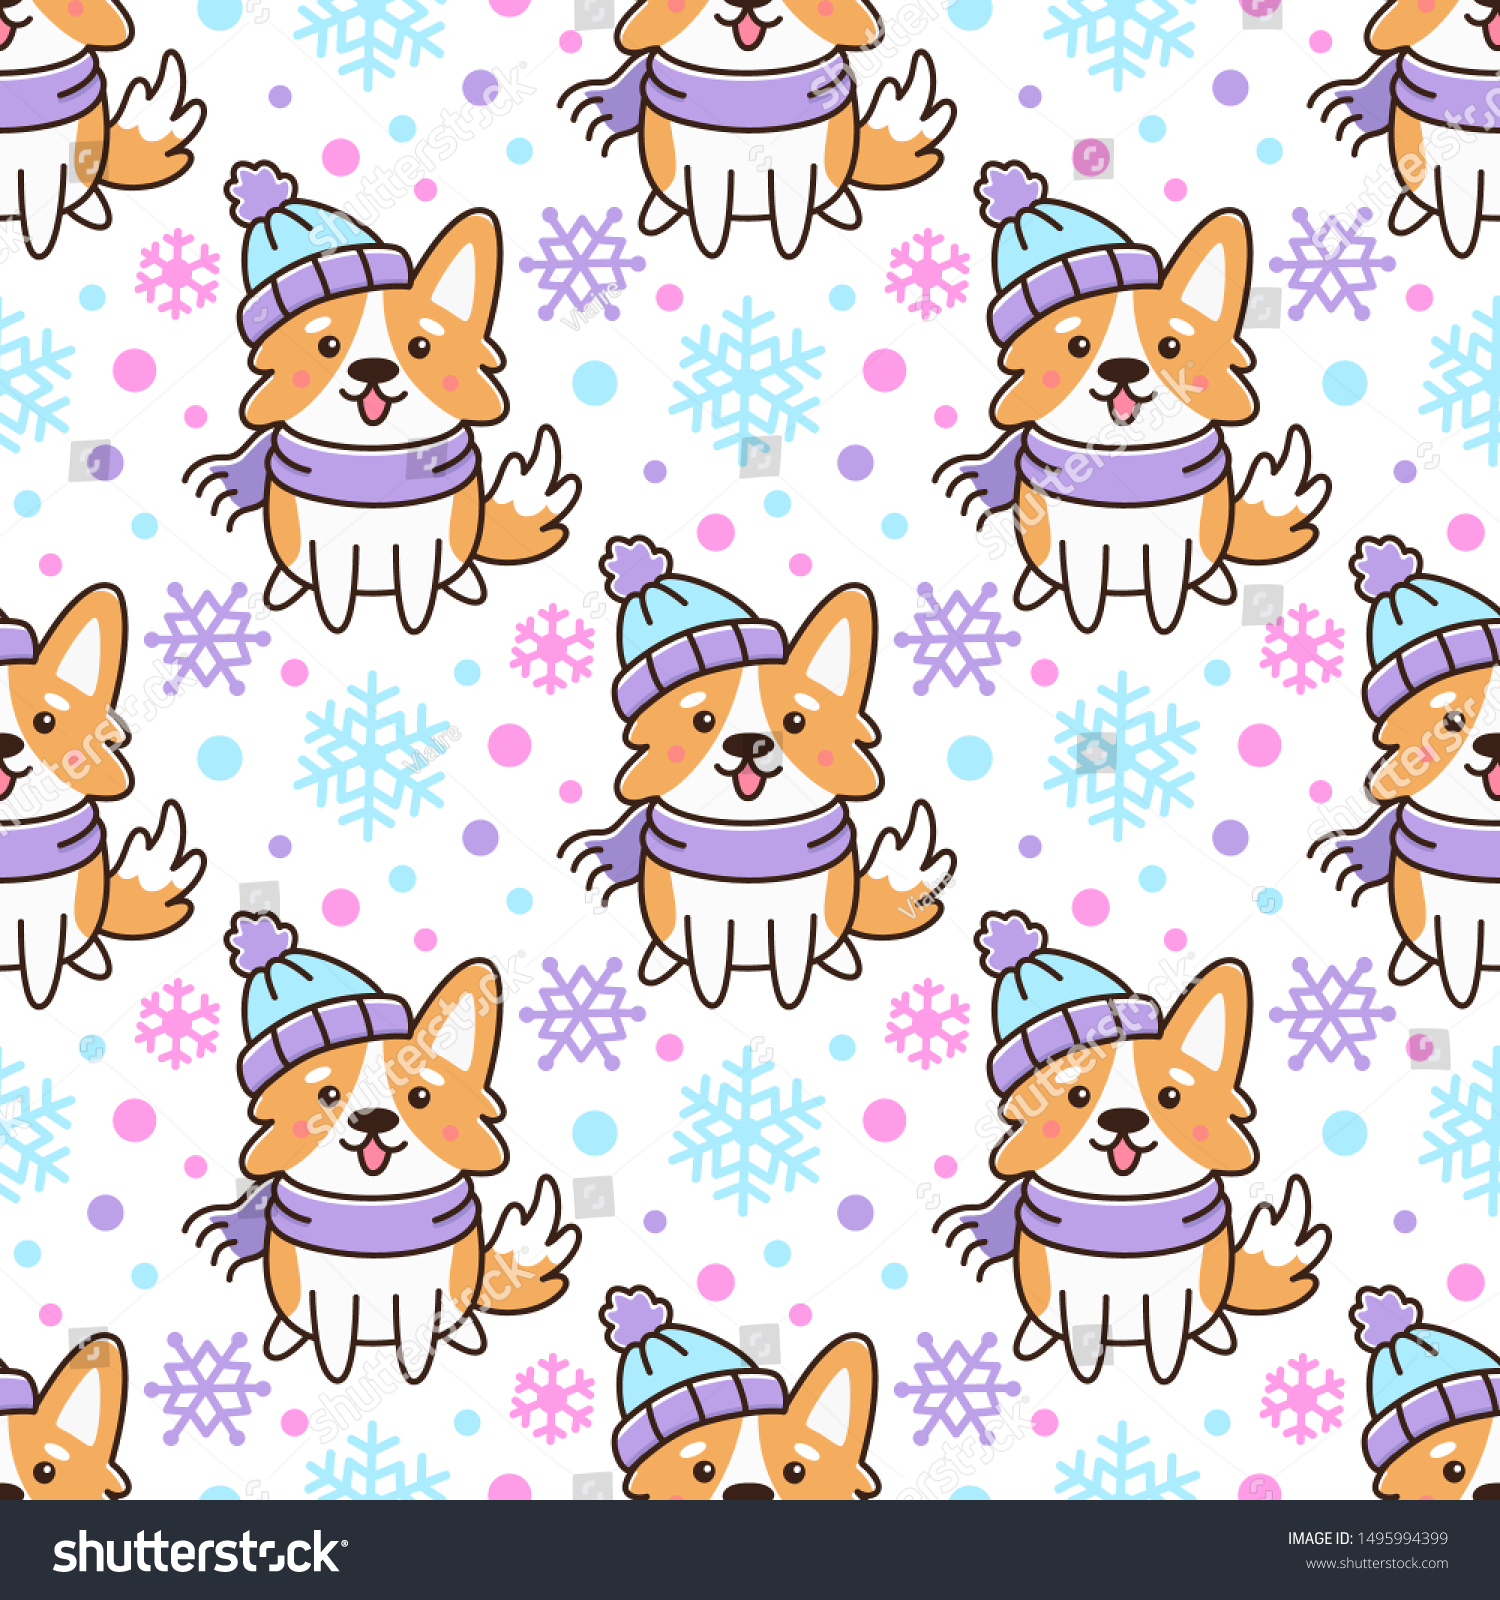 Seamless pattern with сute dog breed welsh corgi in hat and scarf with snowflakes, on white background. Excellent design for packaging, wrapping paper, textile etc.